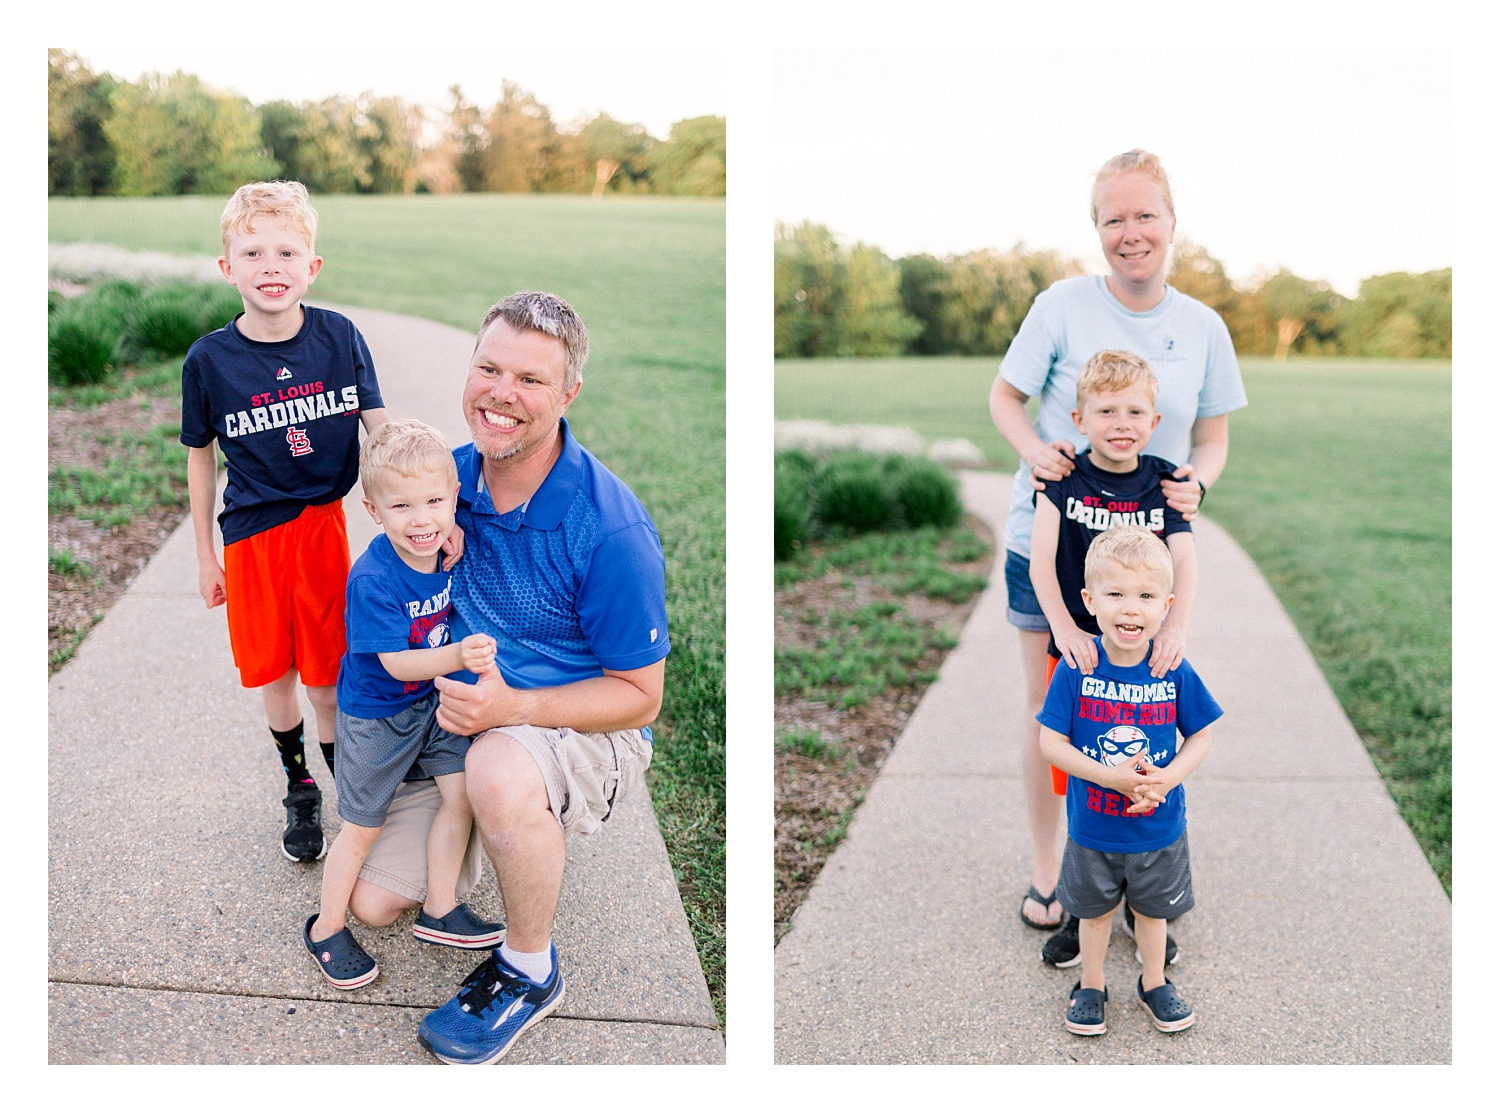 Wisconsin-Family-Photographers-Elle-x-Troy-Photography-The-Bopp-Family-Robert-Allerton-Park-Monticello-Illinois_0021.jpg